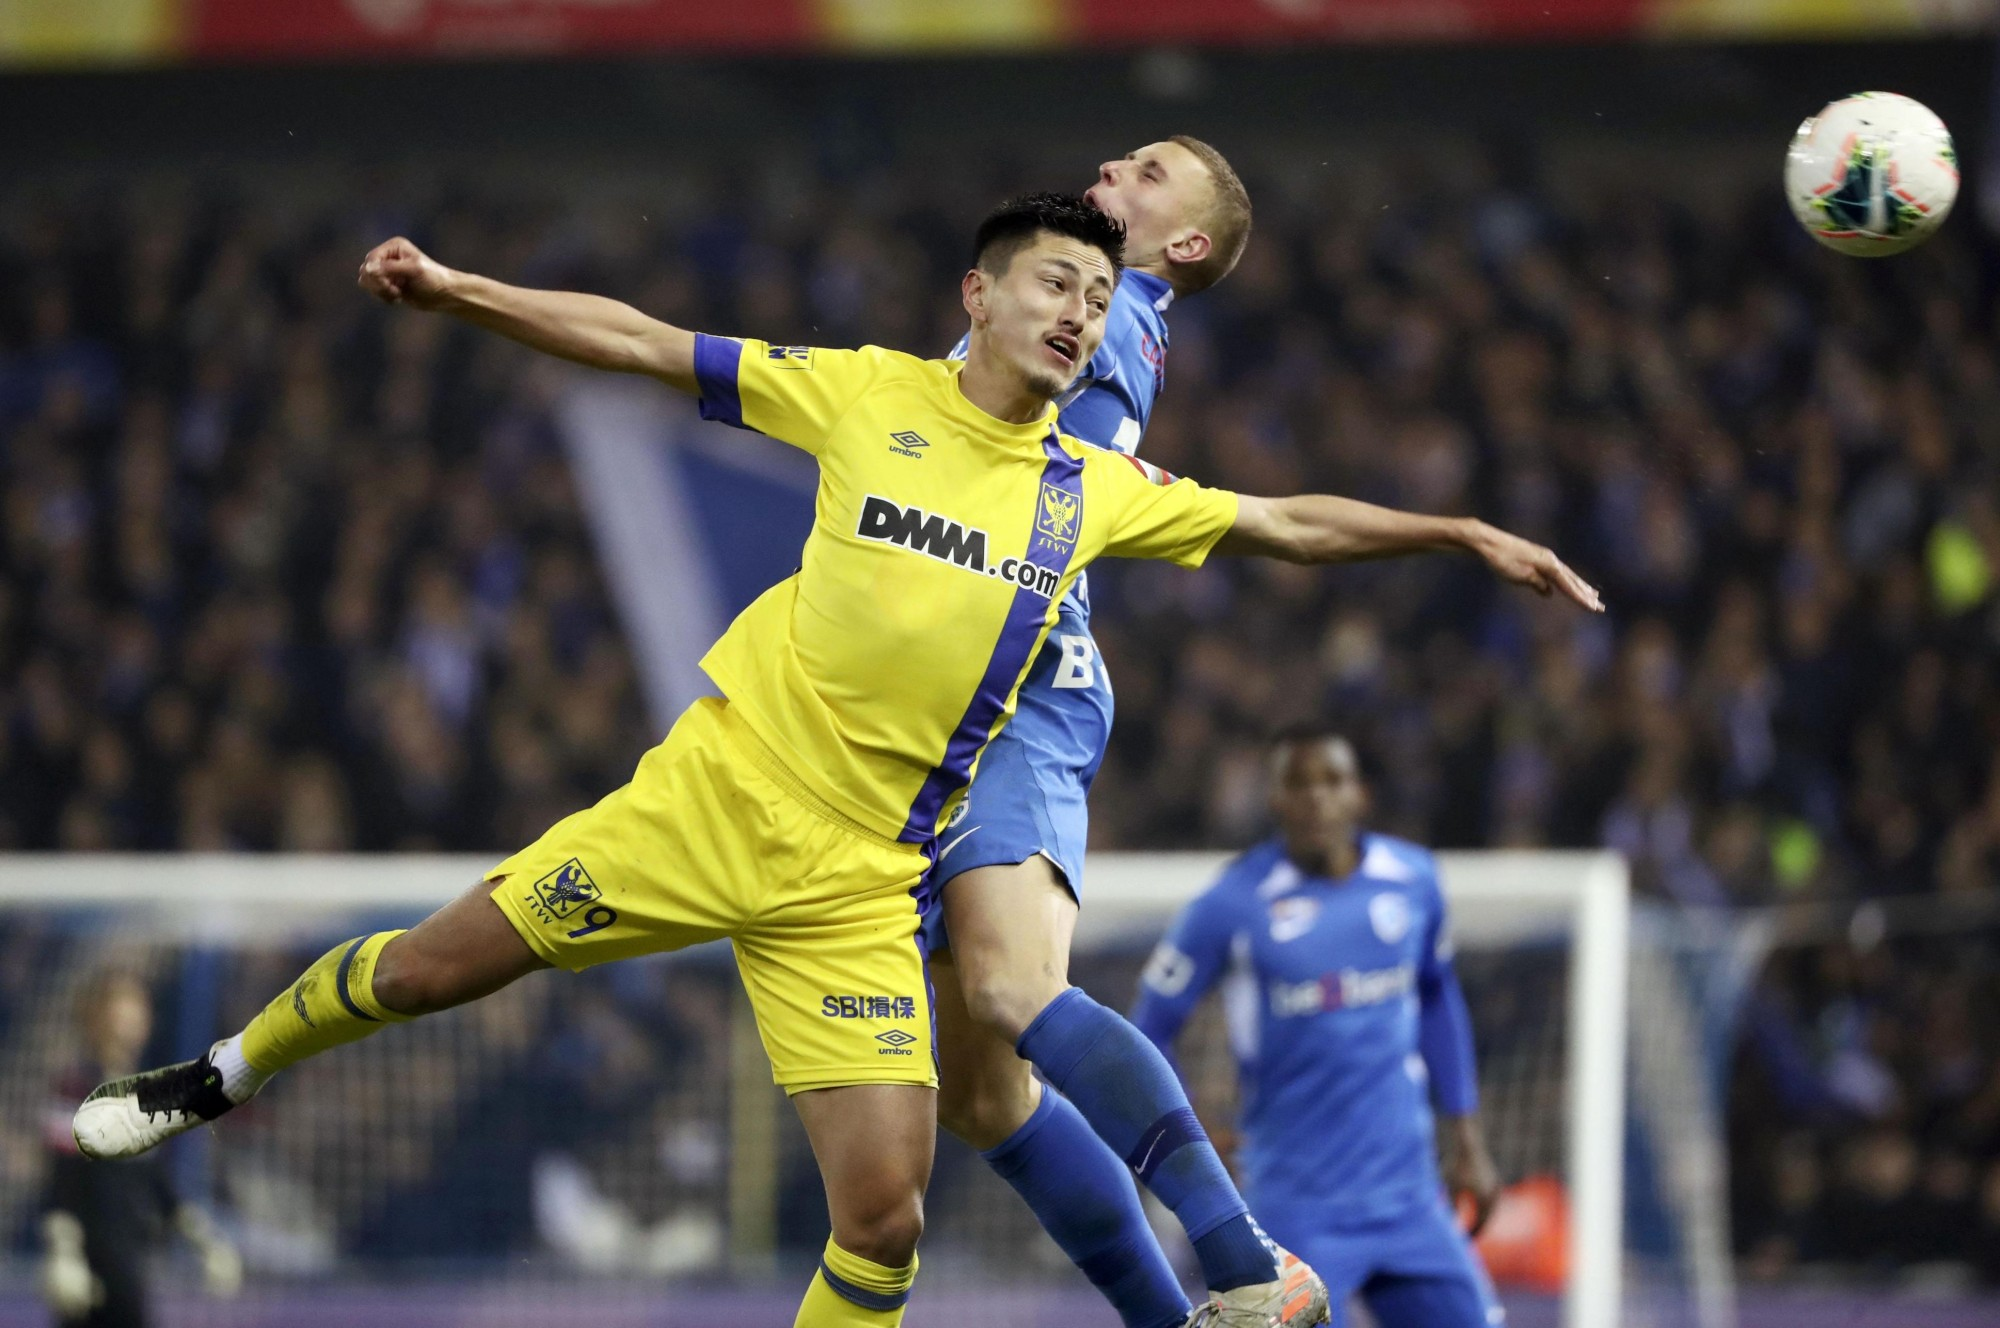 Sint-Truiden's Yuma Suzuki contends for the ball against a Genk player on Saturday in Genk, Belgium. | KYODO